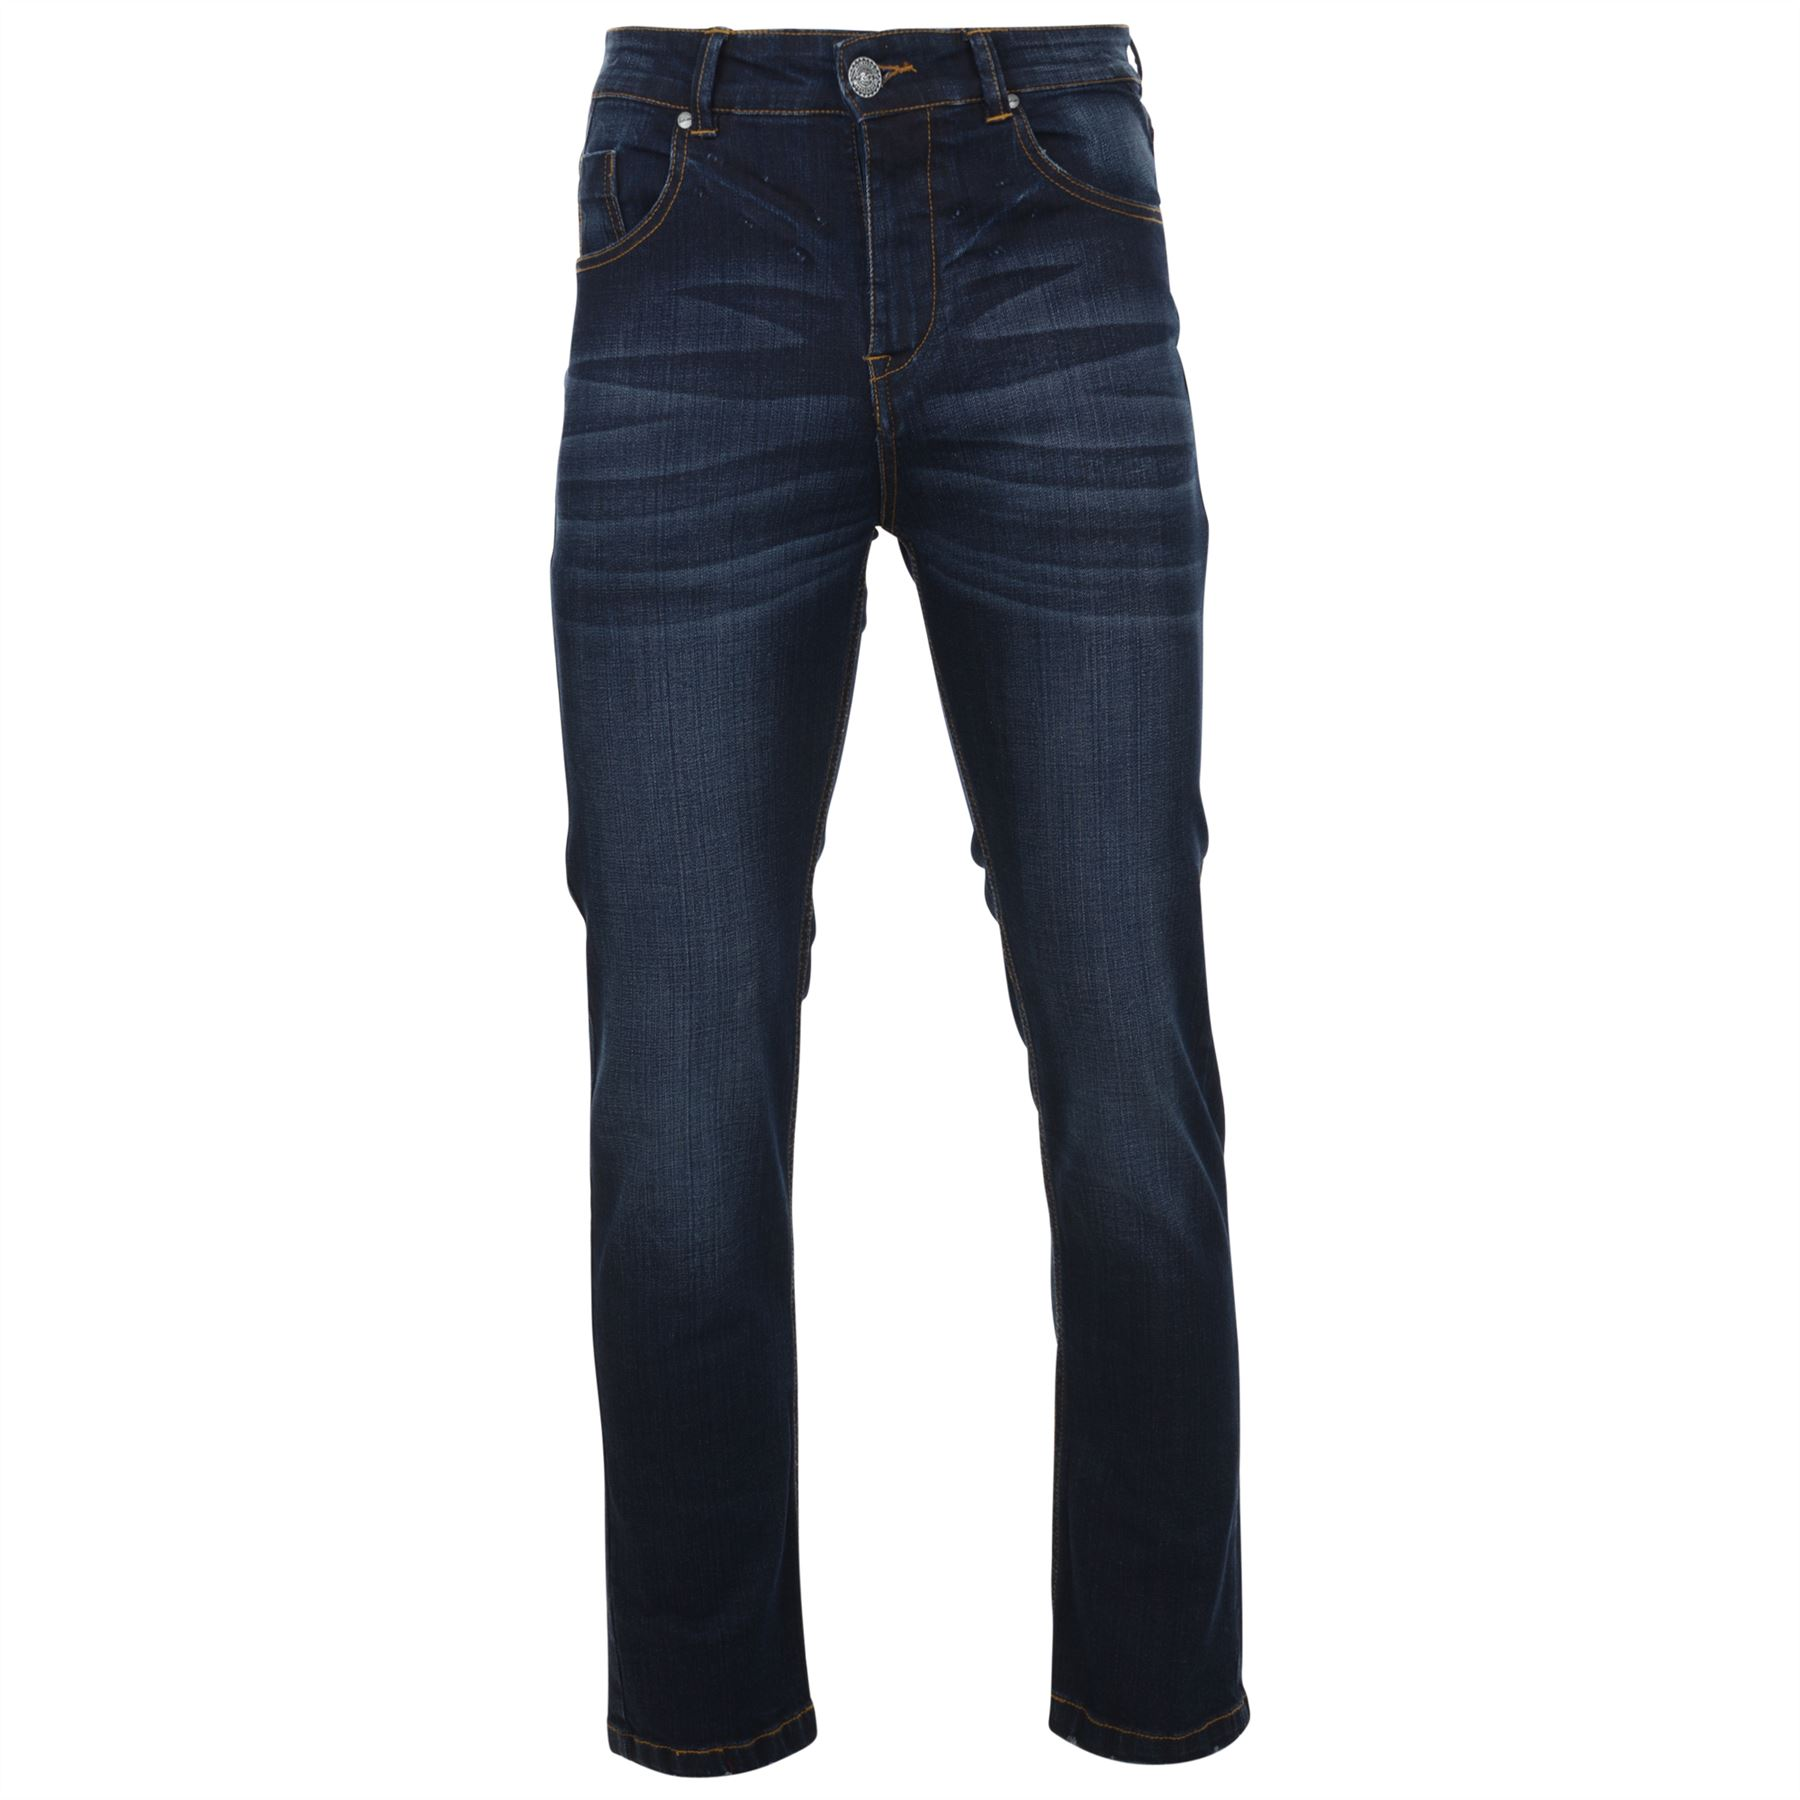 Blue Regular marlow 64 Kam Inches Mens To Waist Fit Washed 40 In Jeans Stretch 7Z17X5A0q